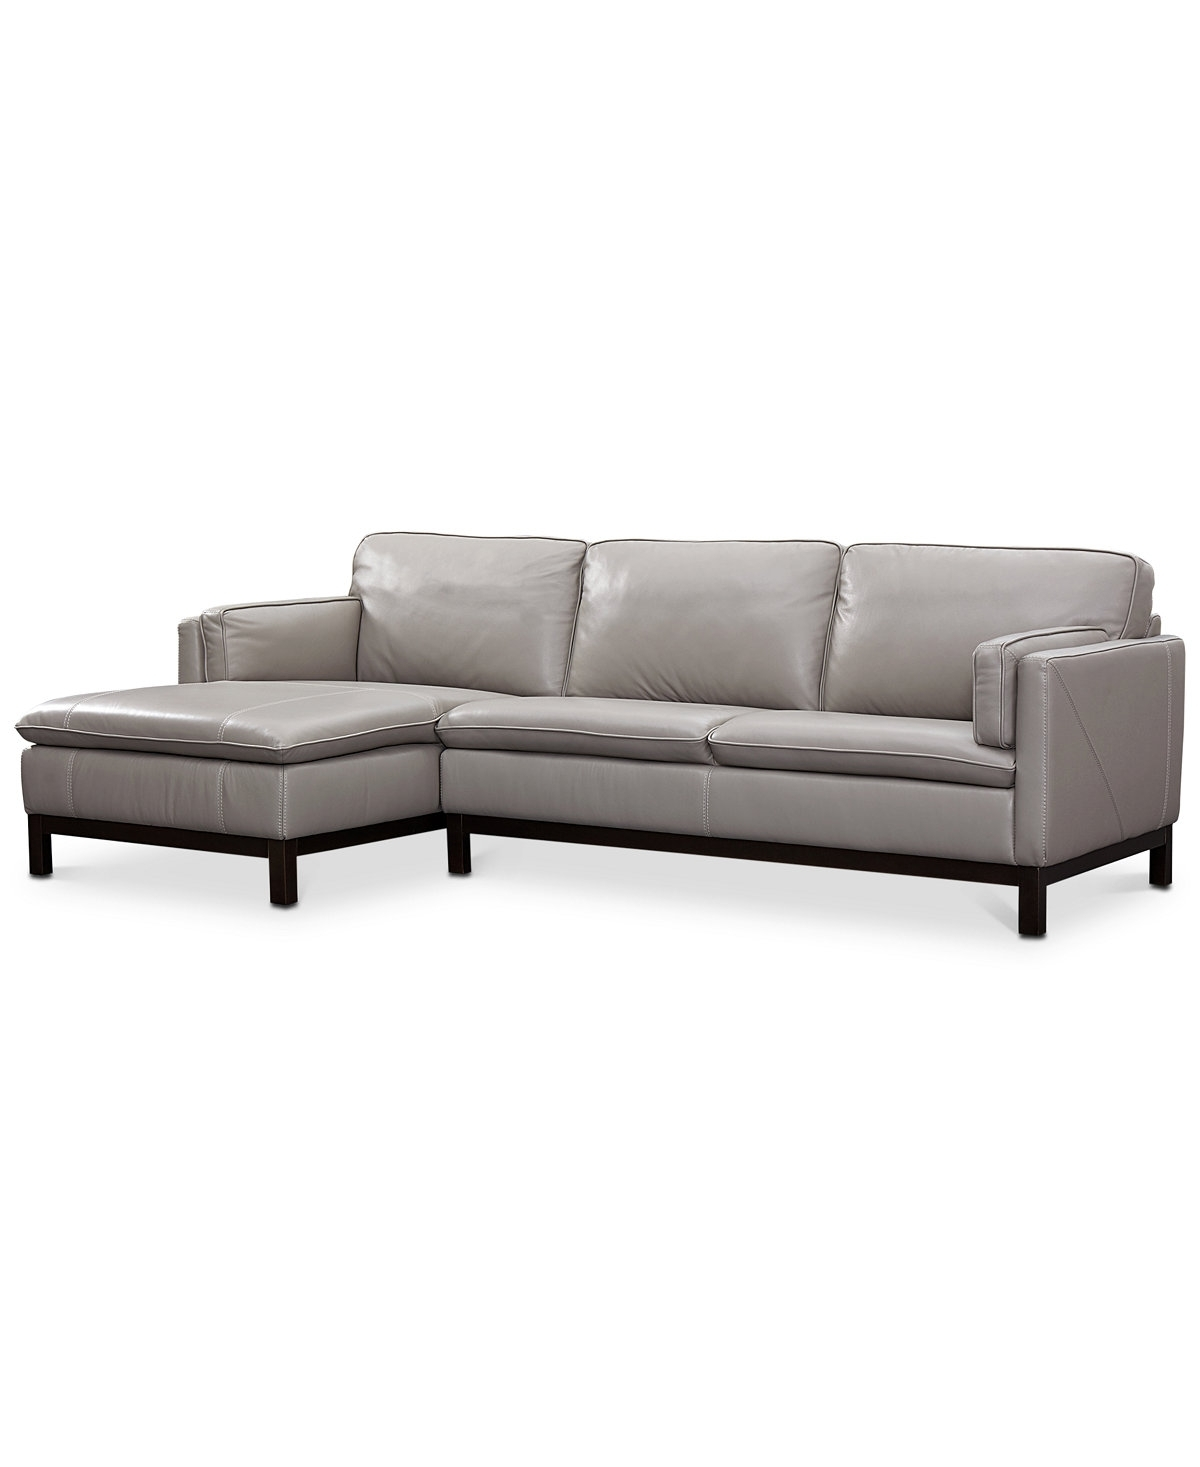 Ventroso 2-Pc. Leather Chaise Sectional Sofa, Created For Macy's inside Best and Newest El Paso Tx Sectional Sofas